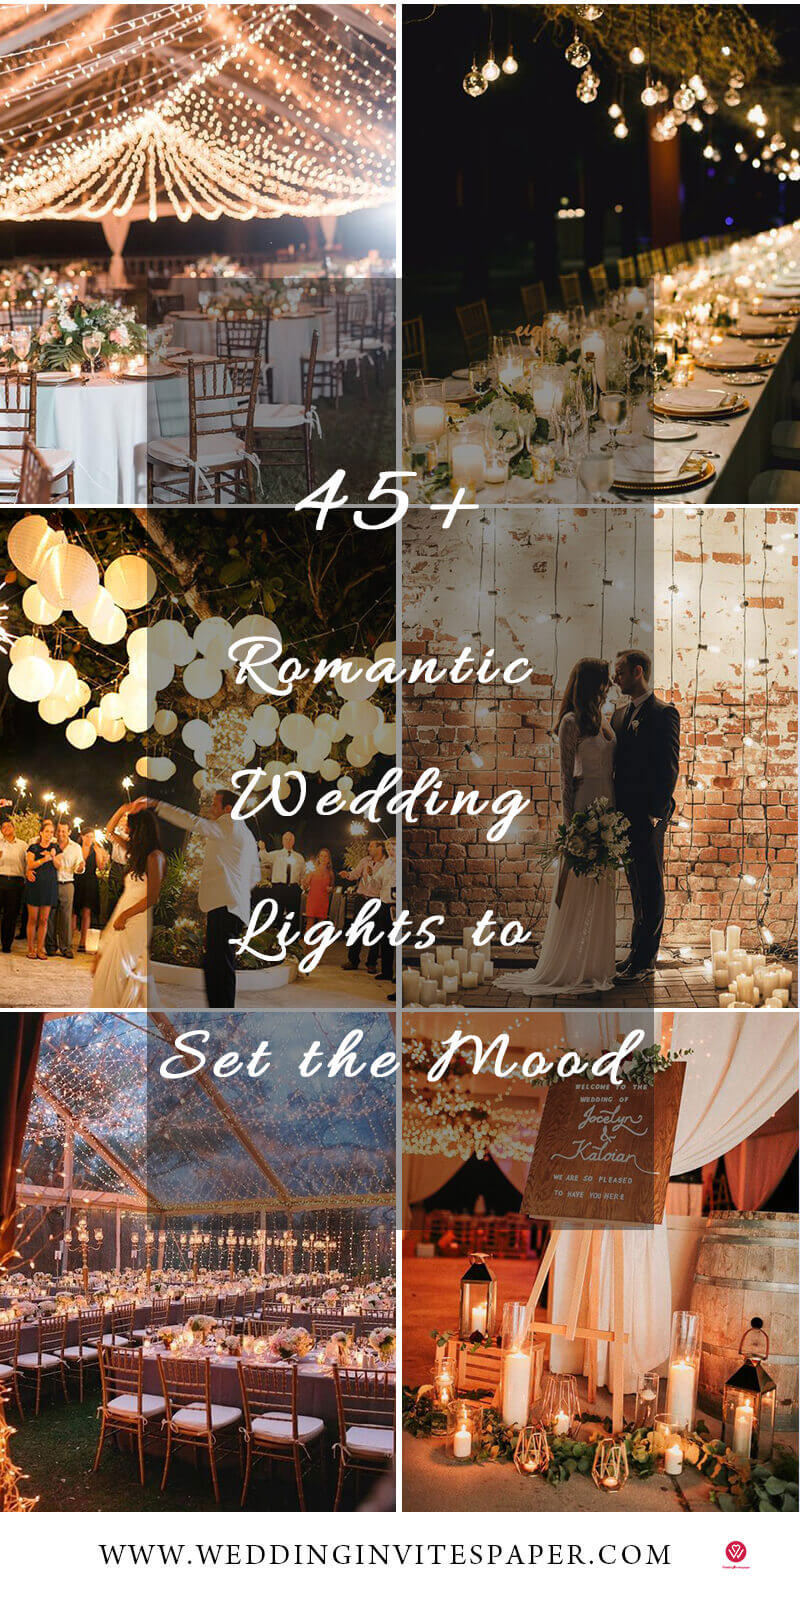 ROMANTIC-WEDDING-LIGHTS-副本.jpg